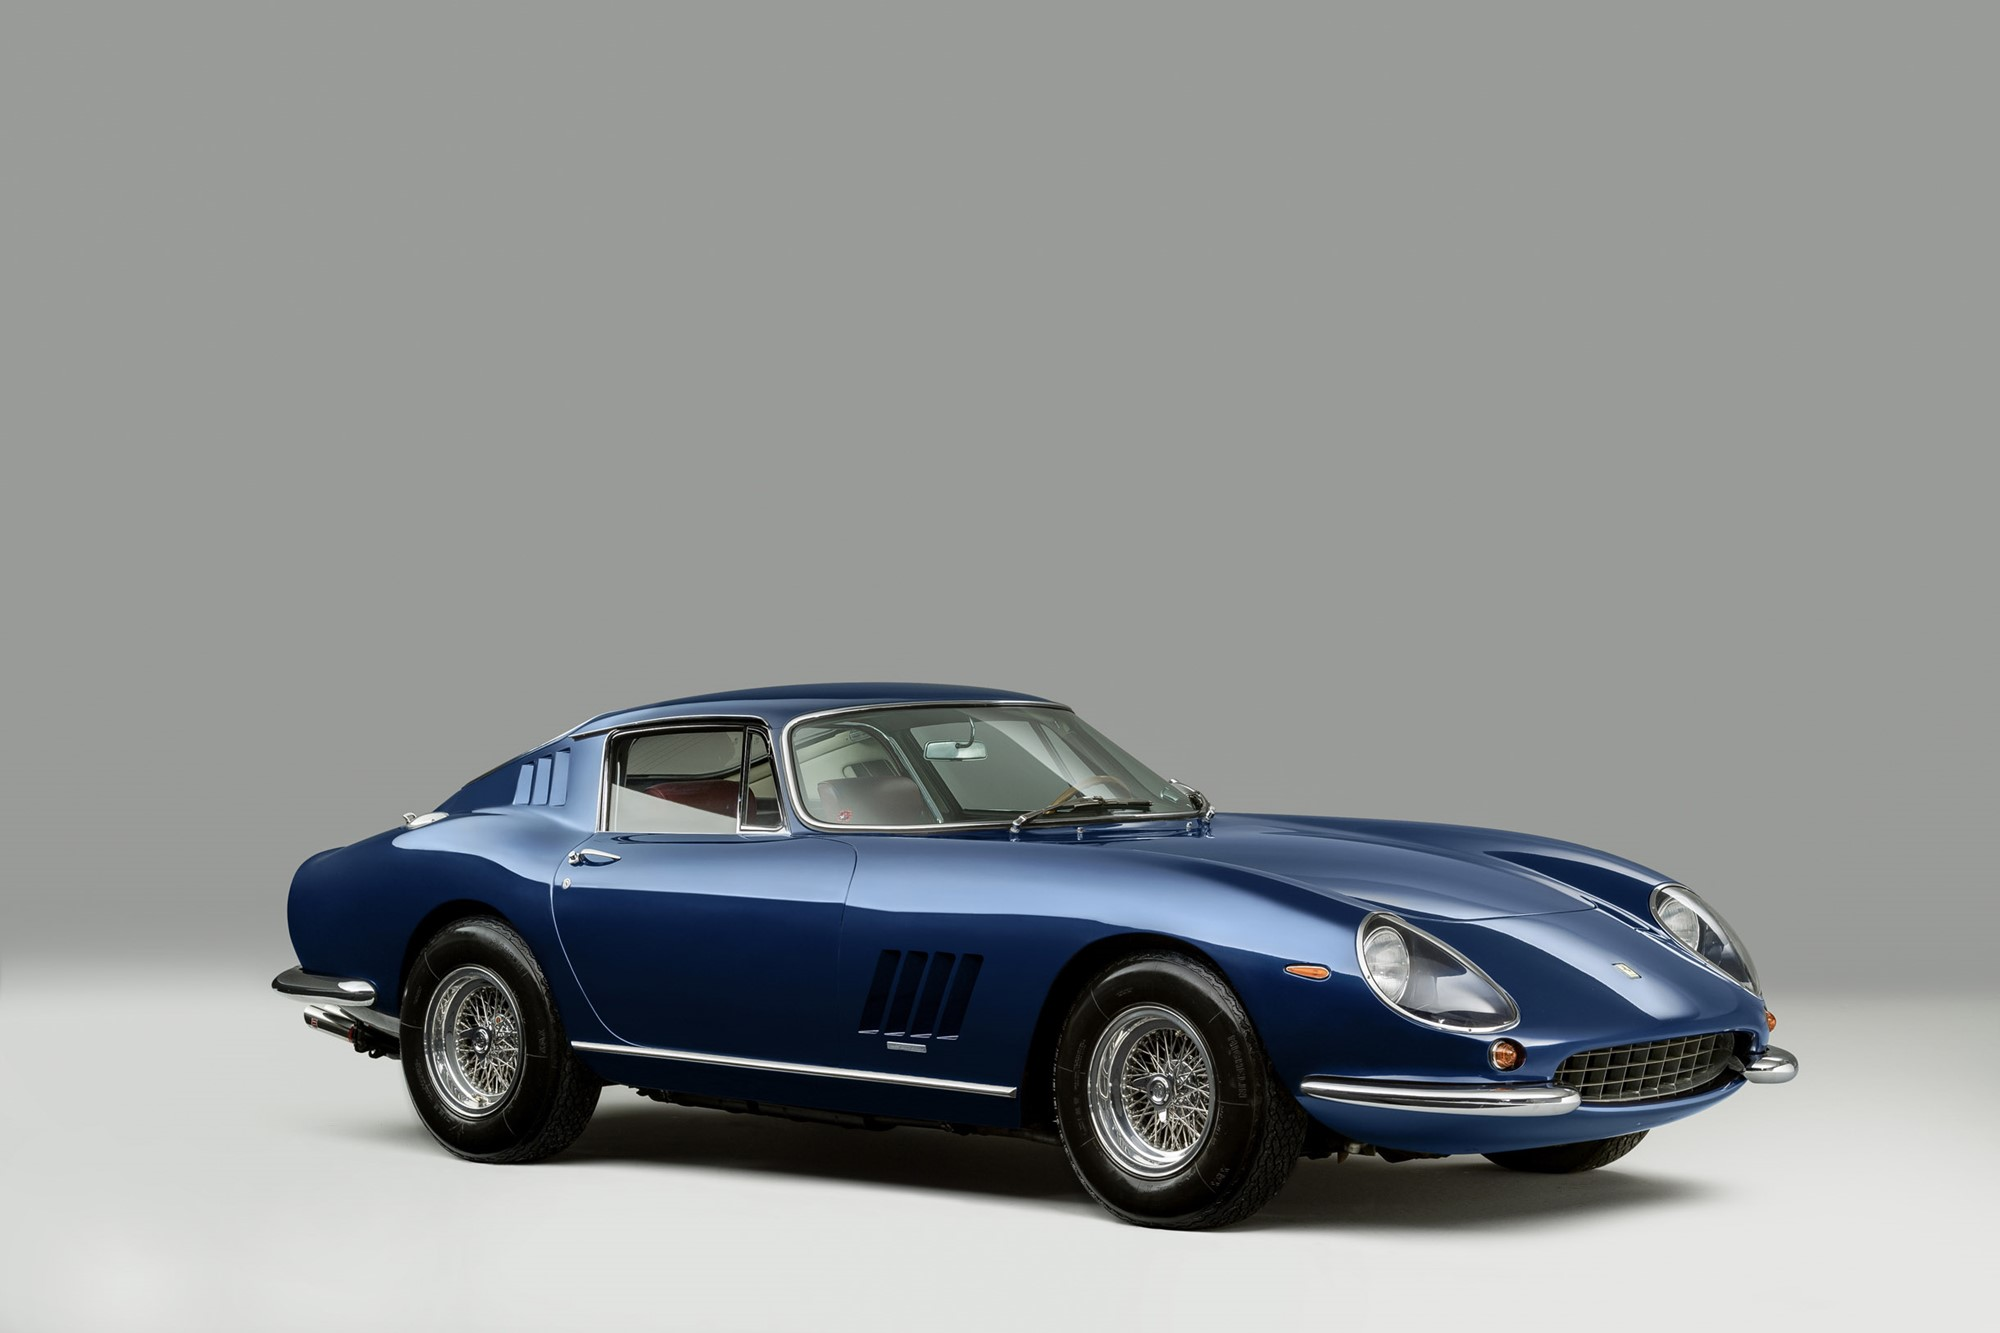 1966 Ferrari 275 Gtb 6c Berlinetta Scaglietti Previously Sold Fiskens